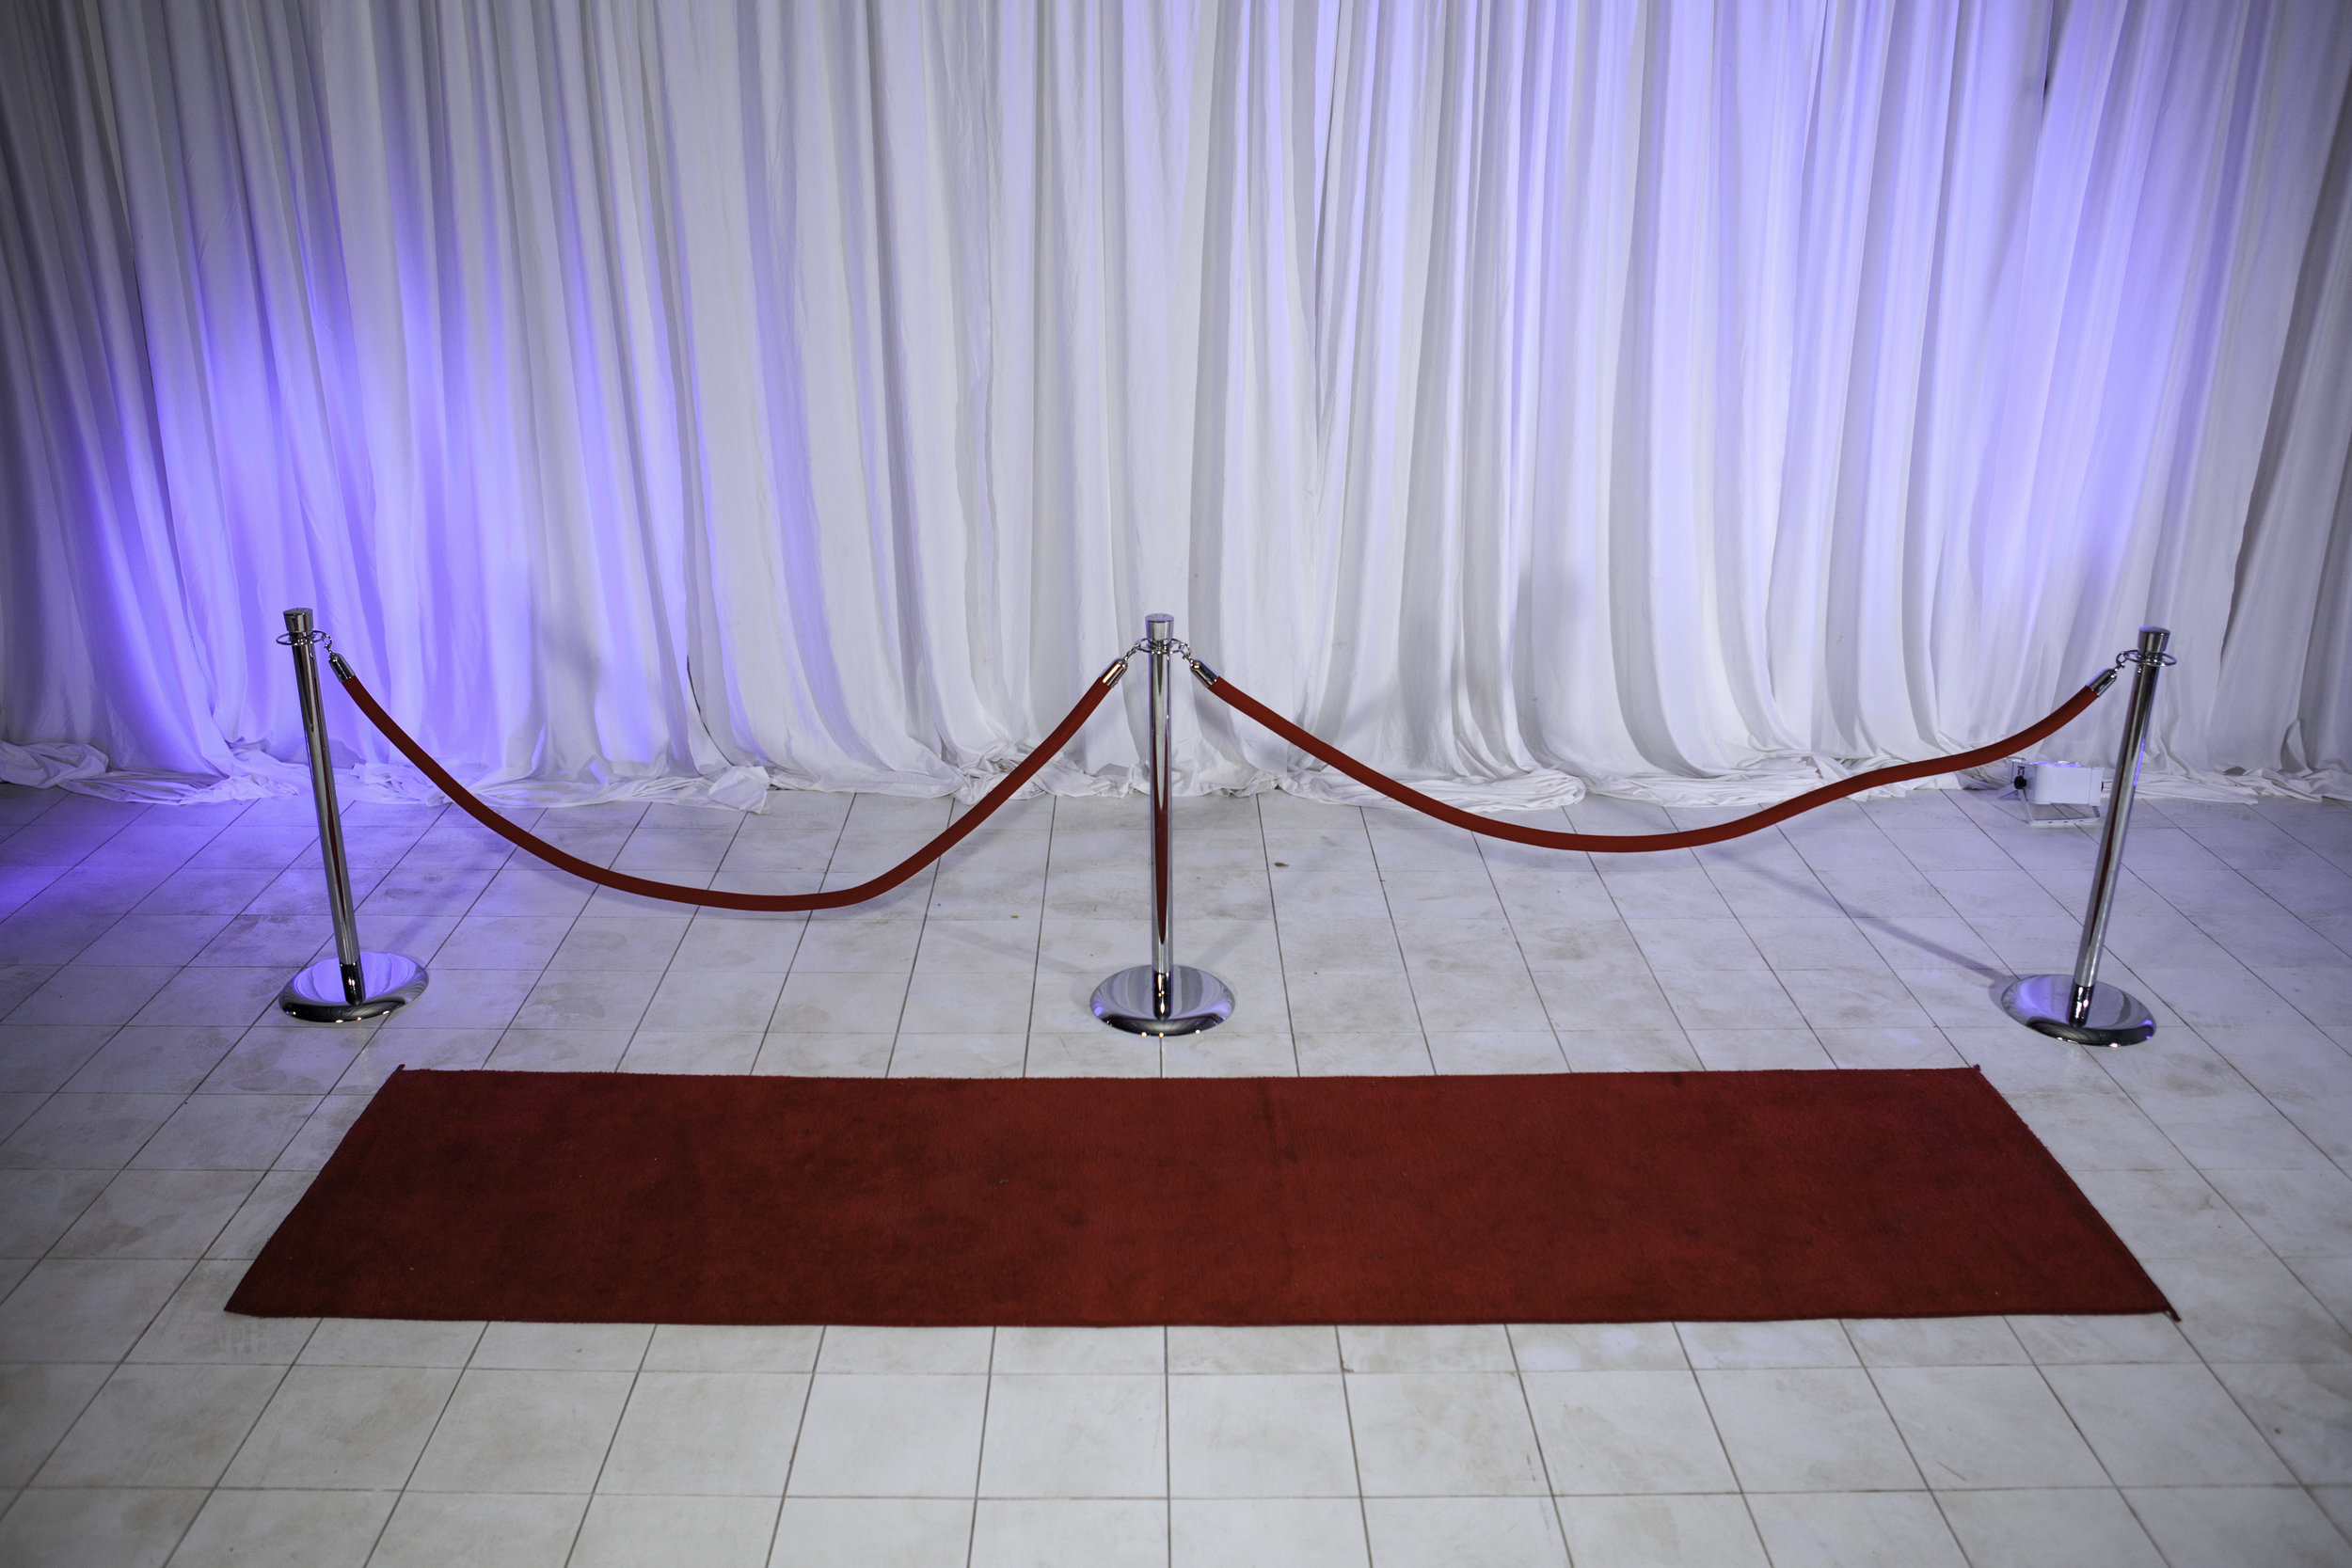 Red Carpet:Velvet Ropes:Stanchion_2.jpg